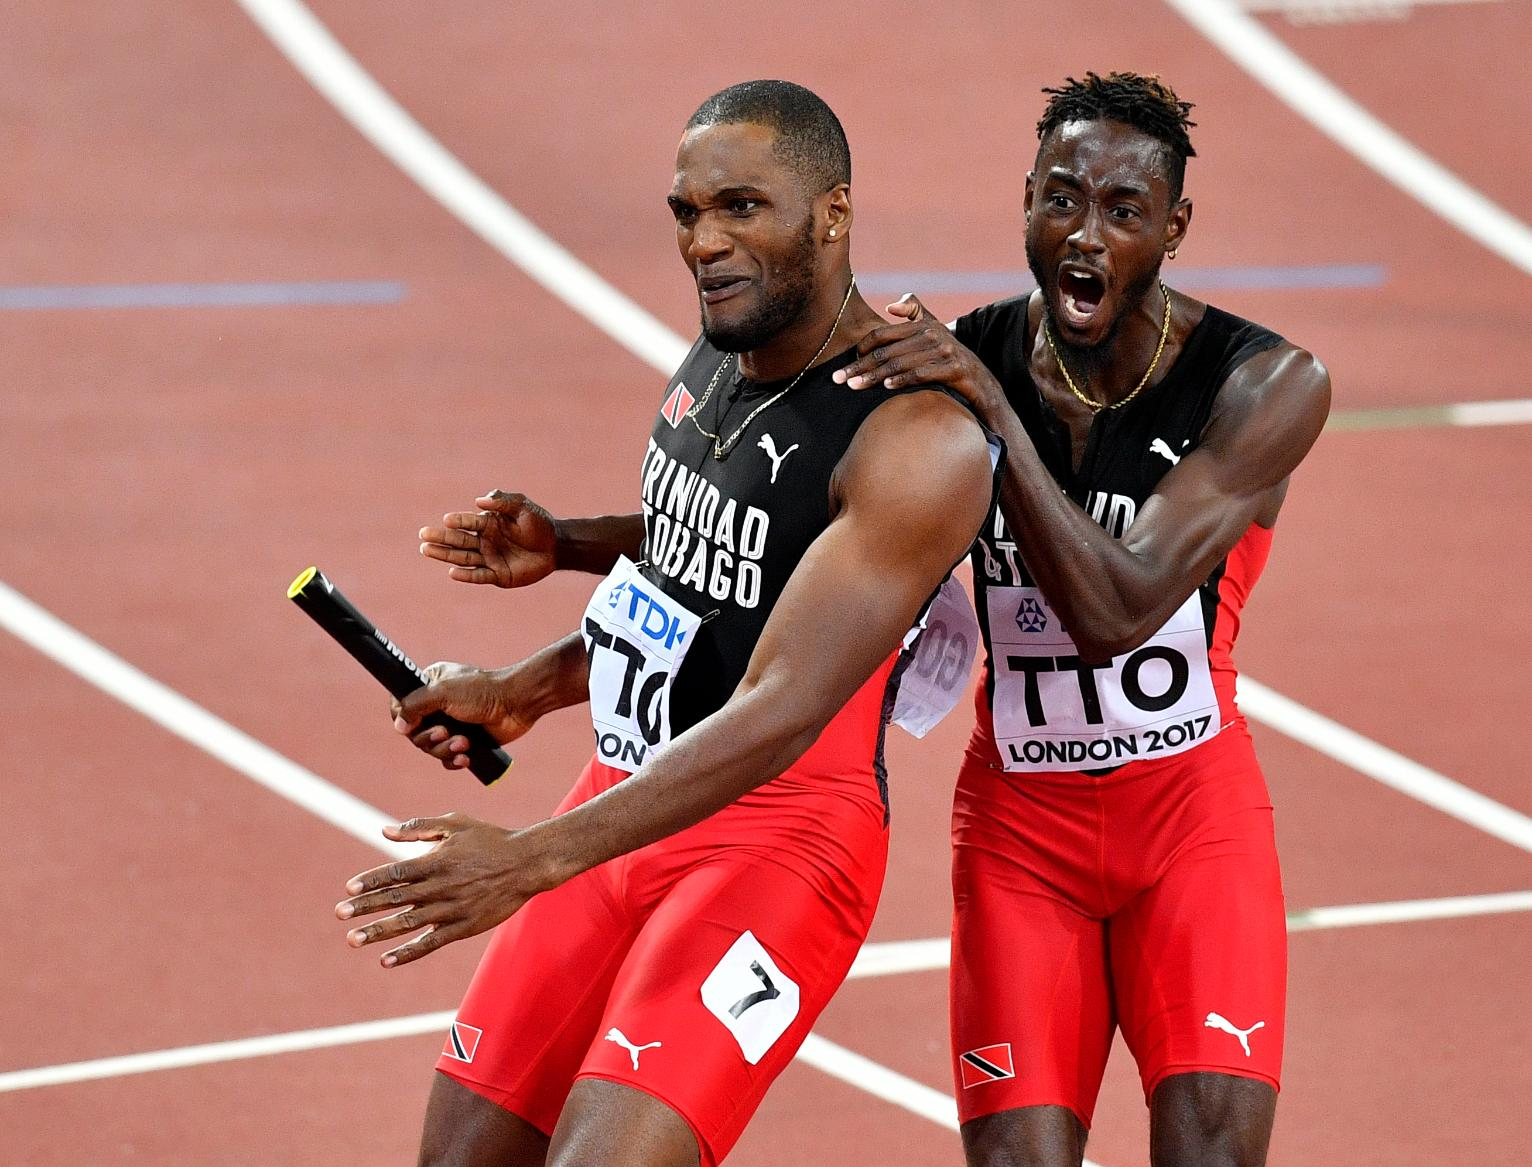 The Latest: Trinidad and Tobago Wins Men's 4x400-Meter Relay